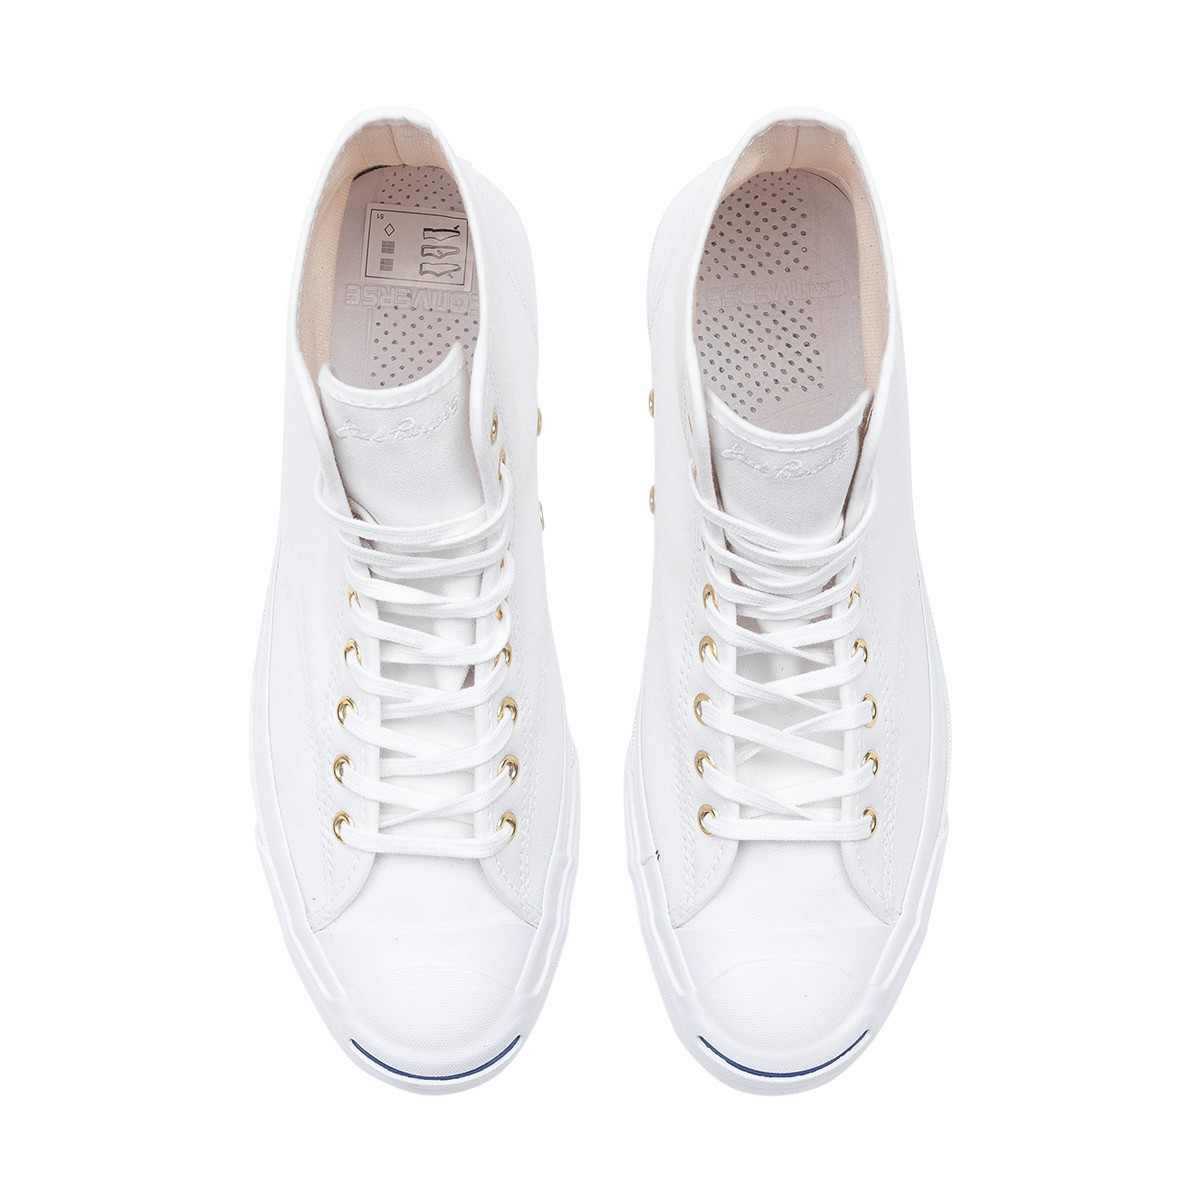 a85d066b7d7 ... Lyst - Converse Jack Purcell Qs Signature High duck Canvas Pack .